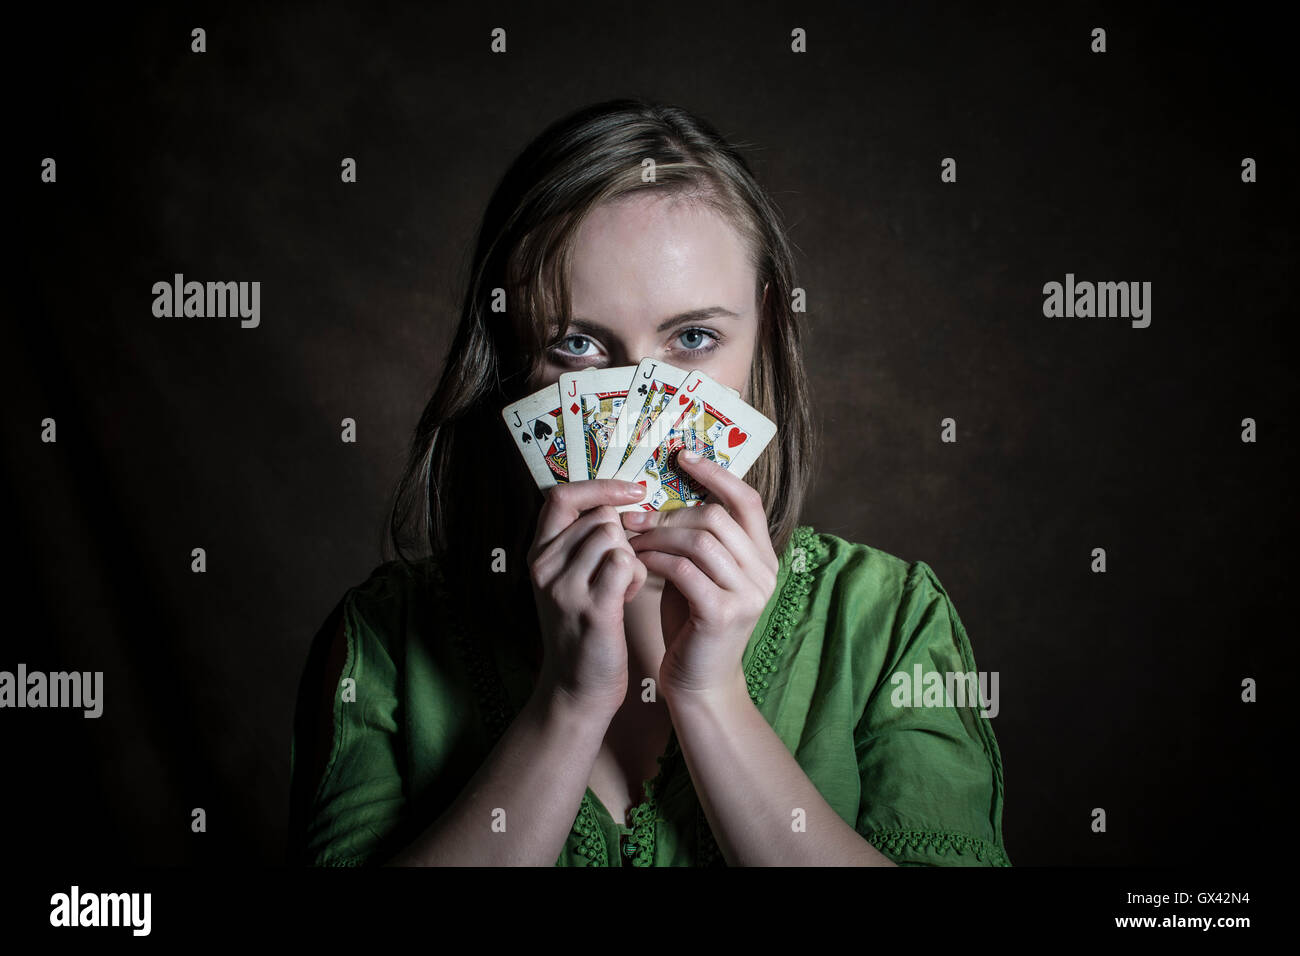 Woman hiding face with playing cards - Stock Image